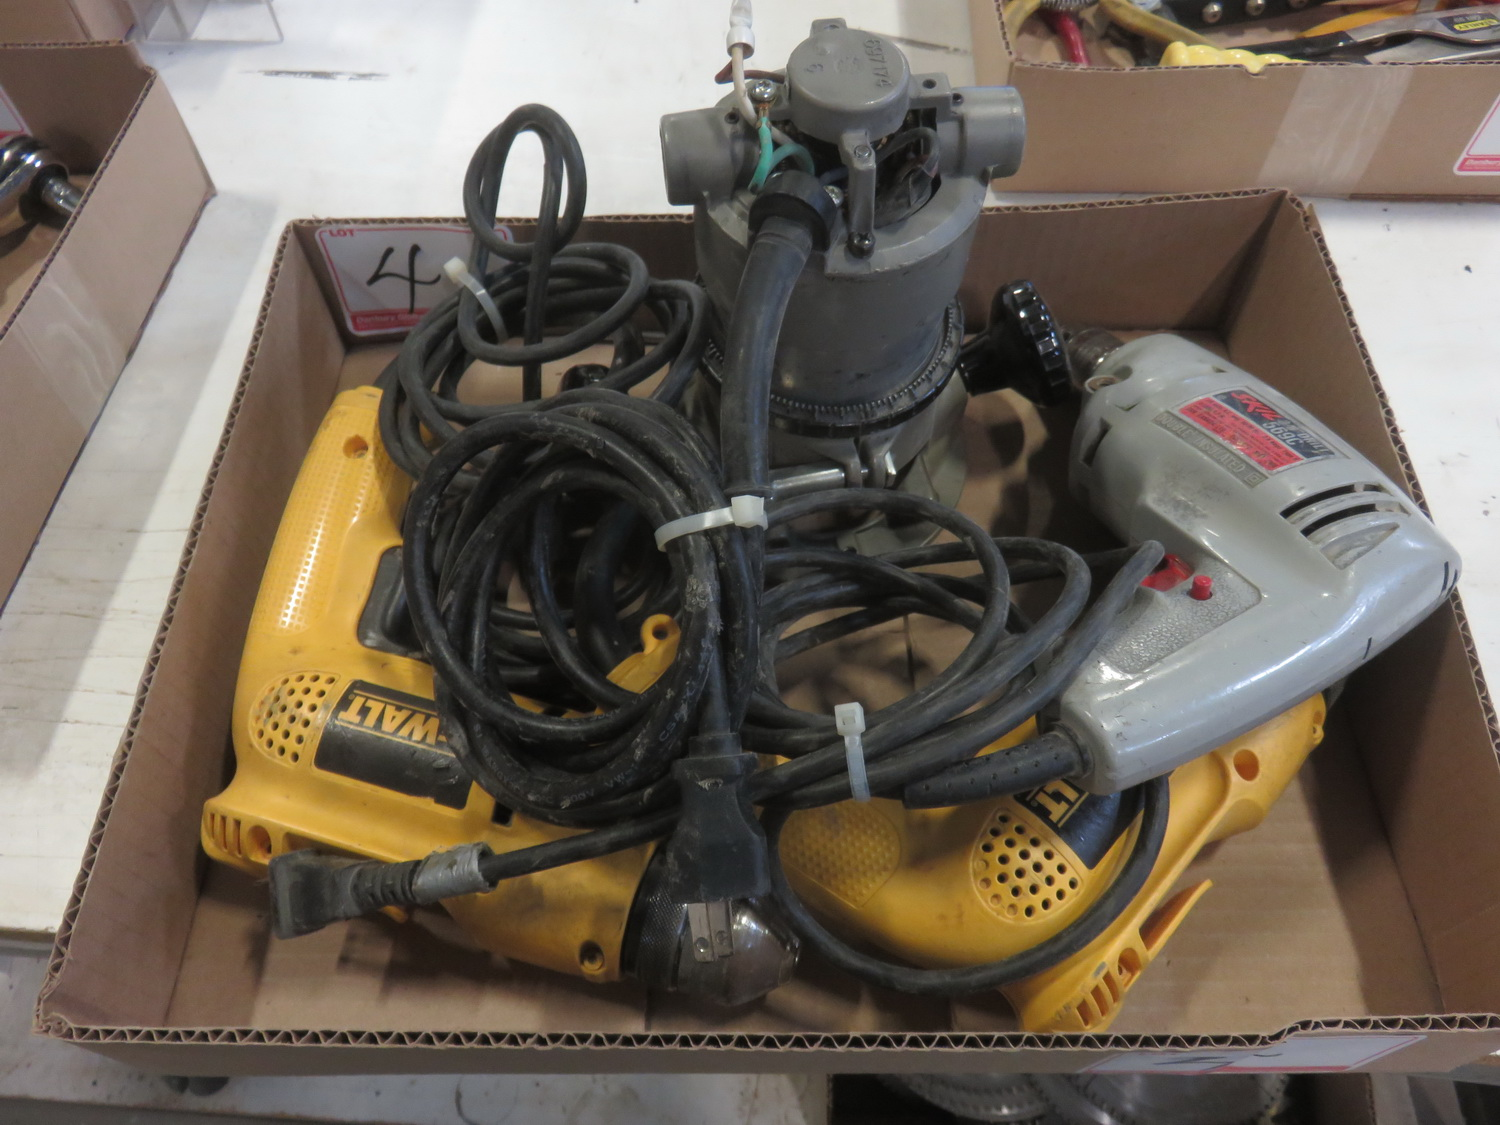 LOT - DEWALT, SKIL, & PORTER CABLE ELECTRIC ROUTER & DRILLS